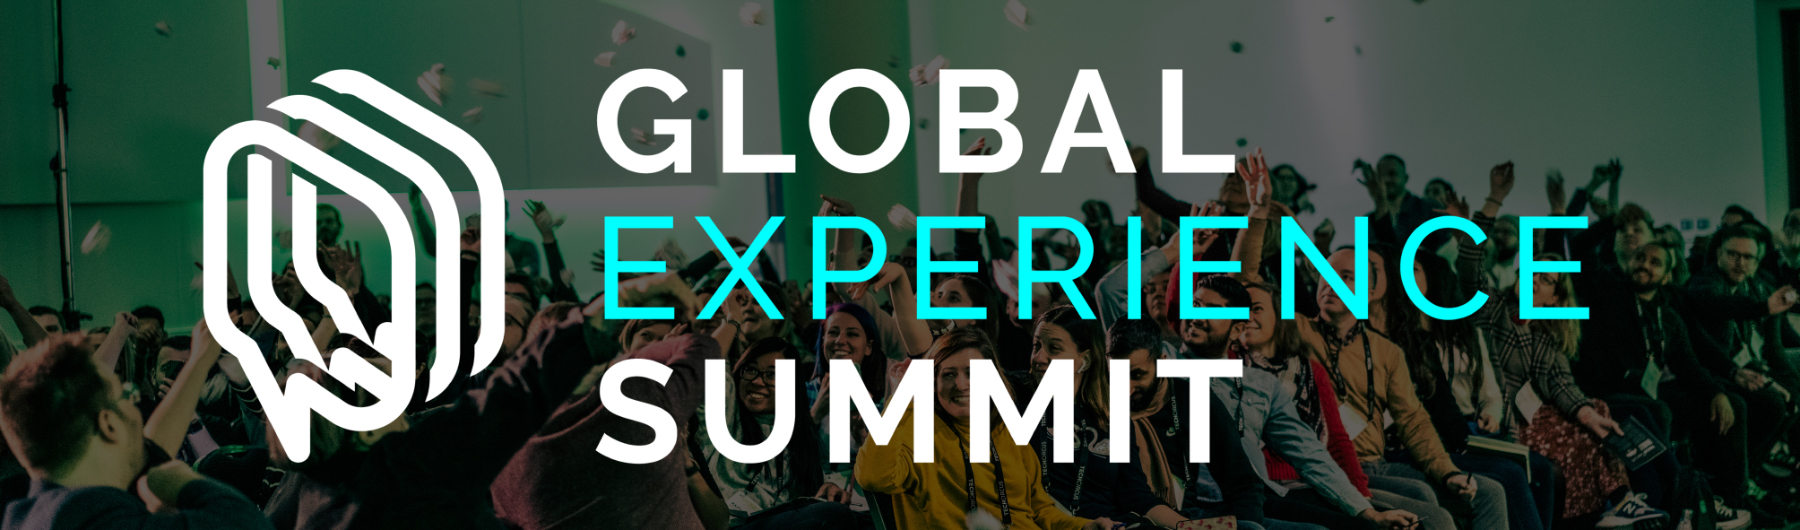 Global Experience Summit 2020